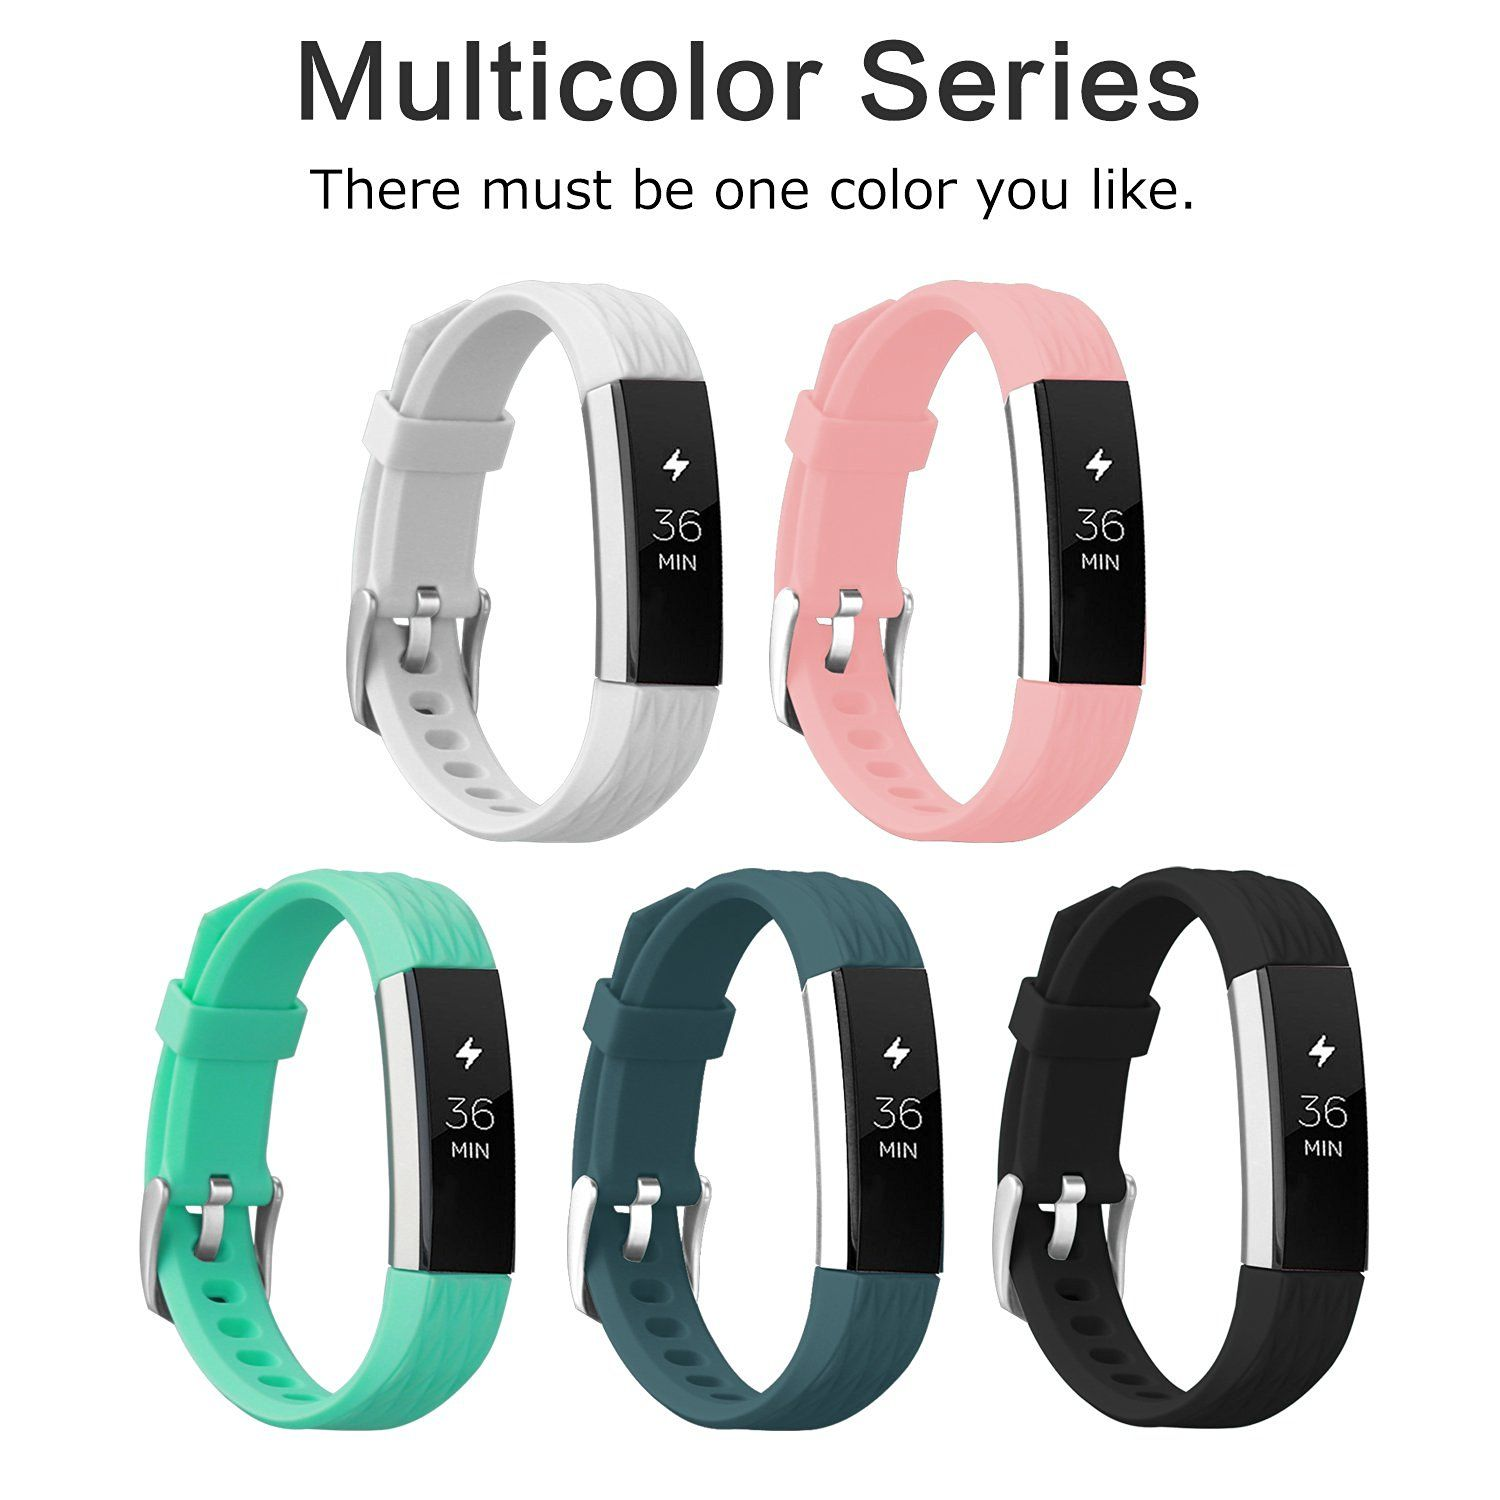 Vancle Fitbit Alta Bands Replacement Wristband Sport Band With Secure Silicone Fastener For Fit